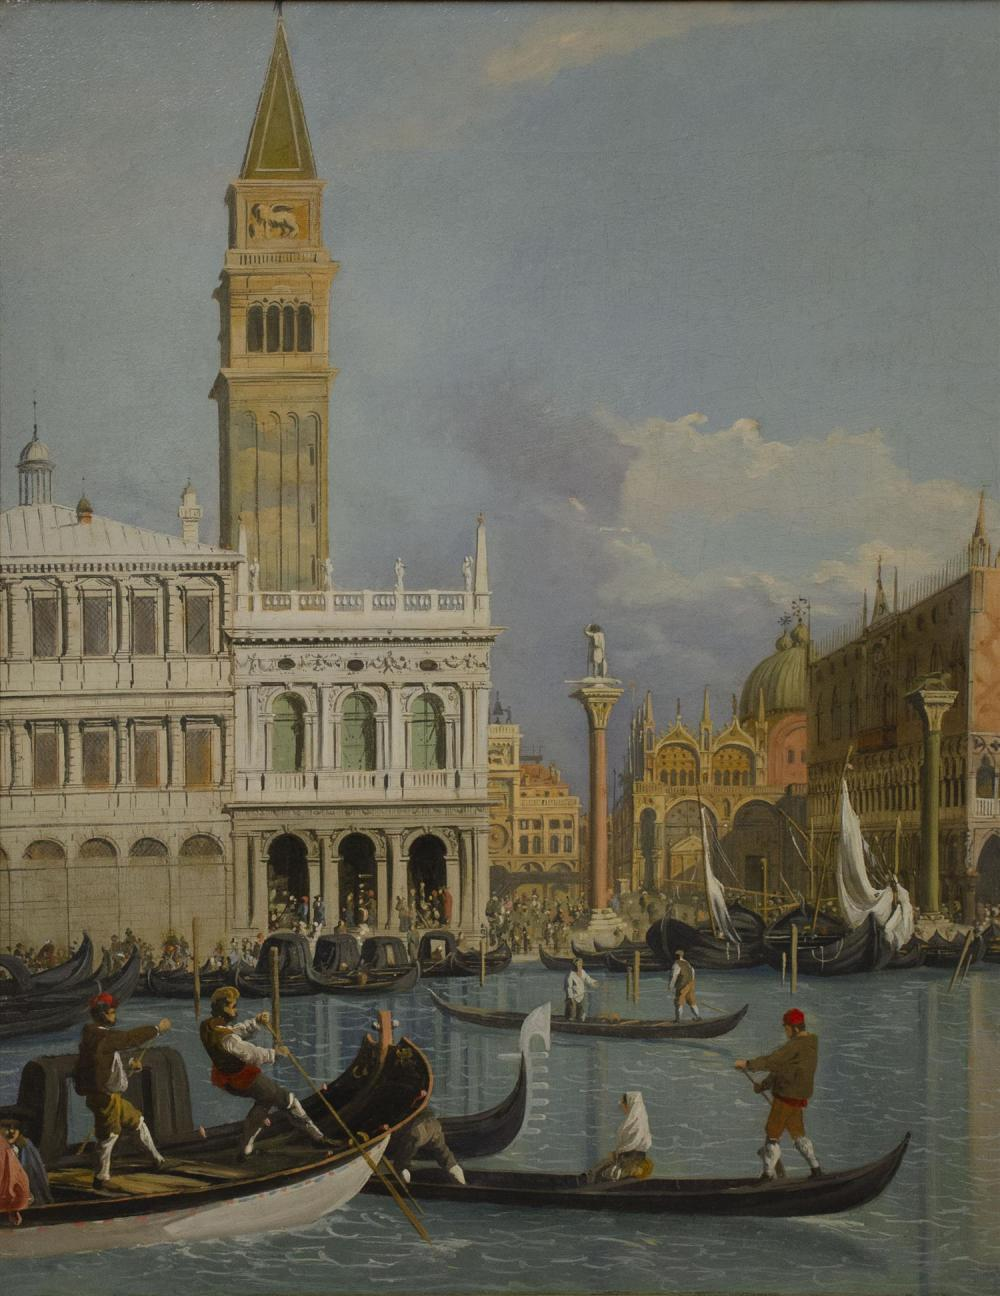 ROBERT SALMON, England/Massachusetts, 1775- c. 1851, Il Molo, Venice, from the Bacino di San Marco., Oil on canvas, 19.75